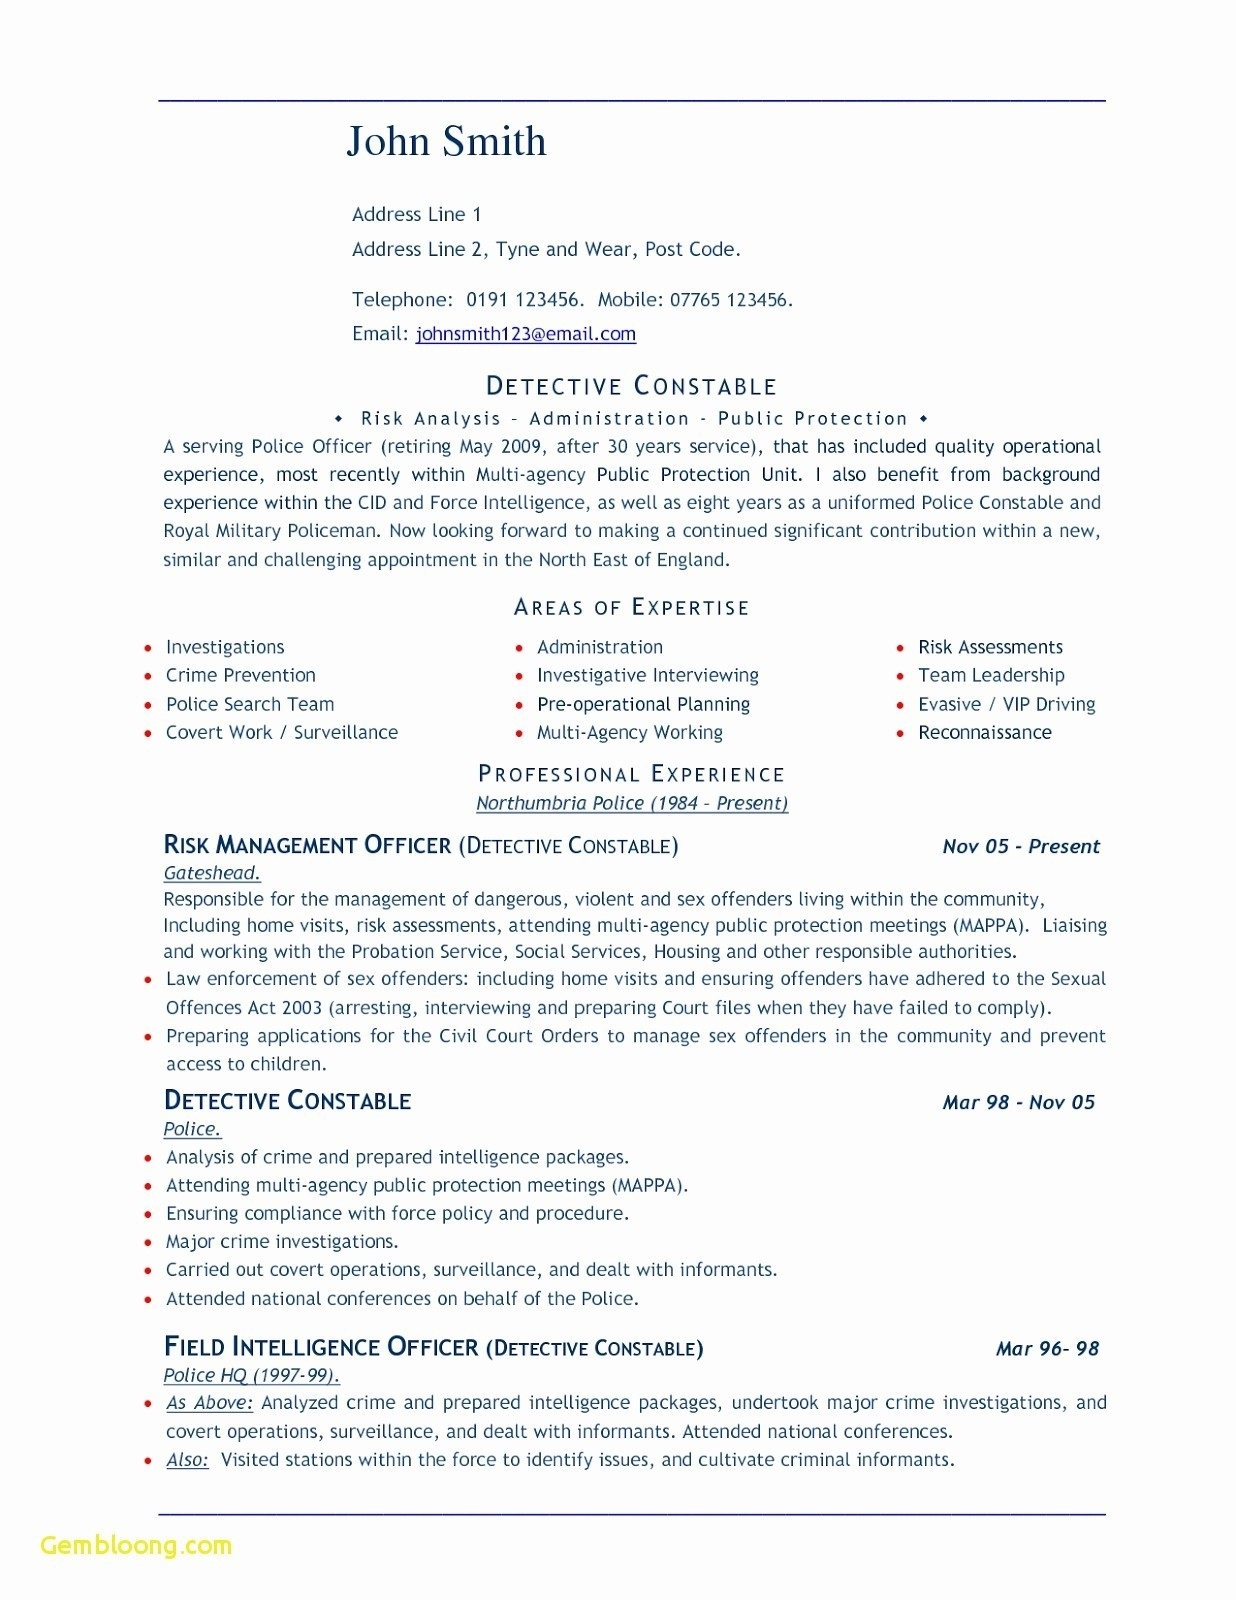 Microsoft Word Templates For Resumes 9 Microsoft Word Templates Resume Ideas Resume Database Template